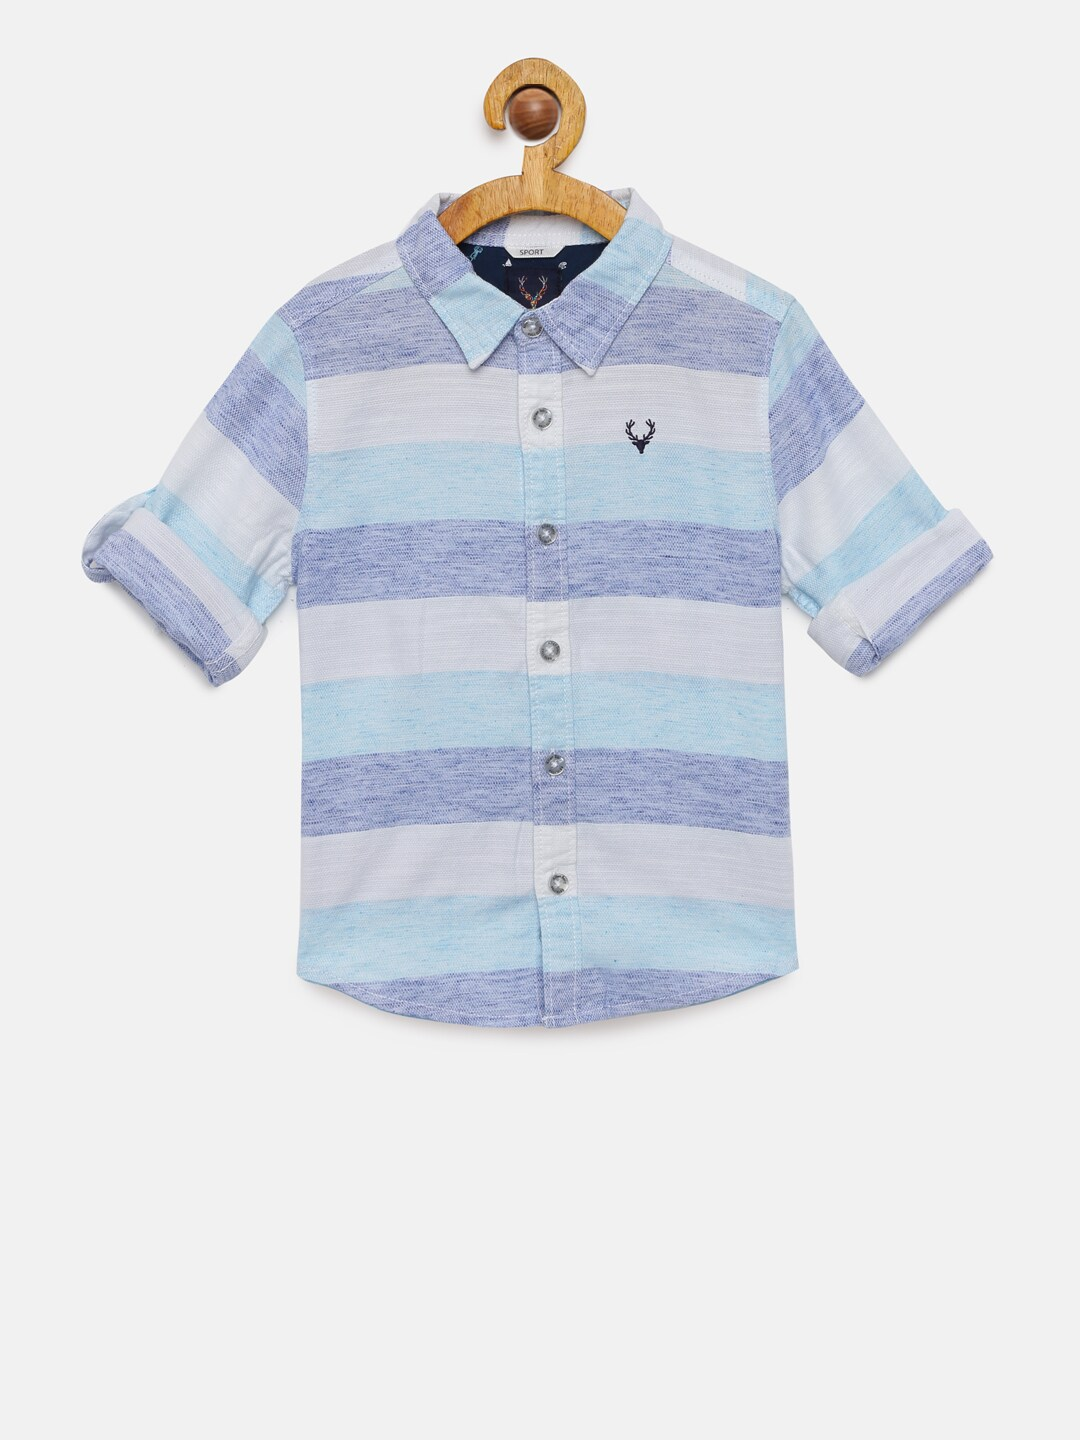 d0cb07d39 Boys Shirts- Buy Shirts for Boys online in India